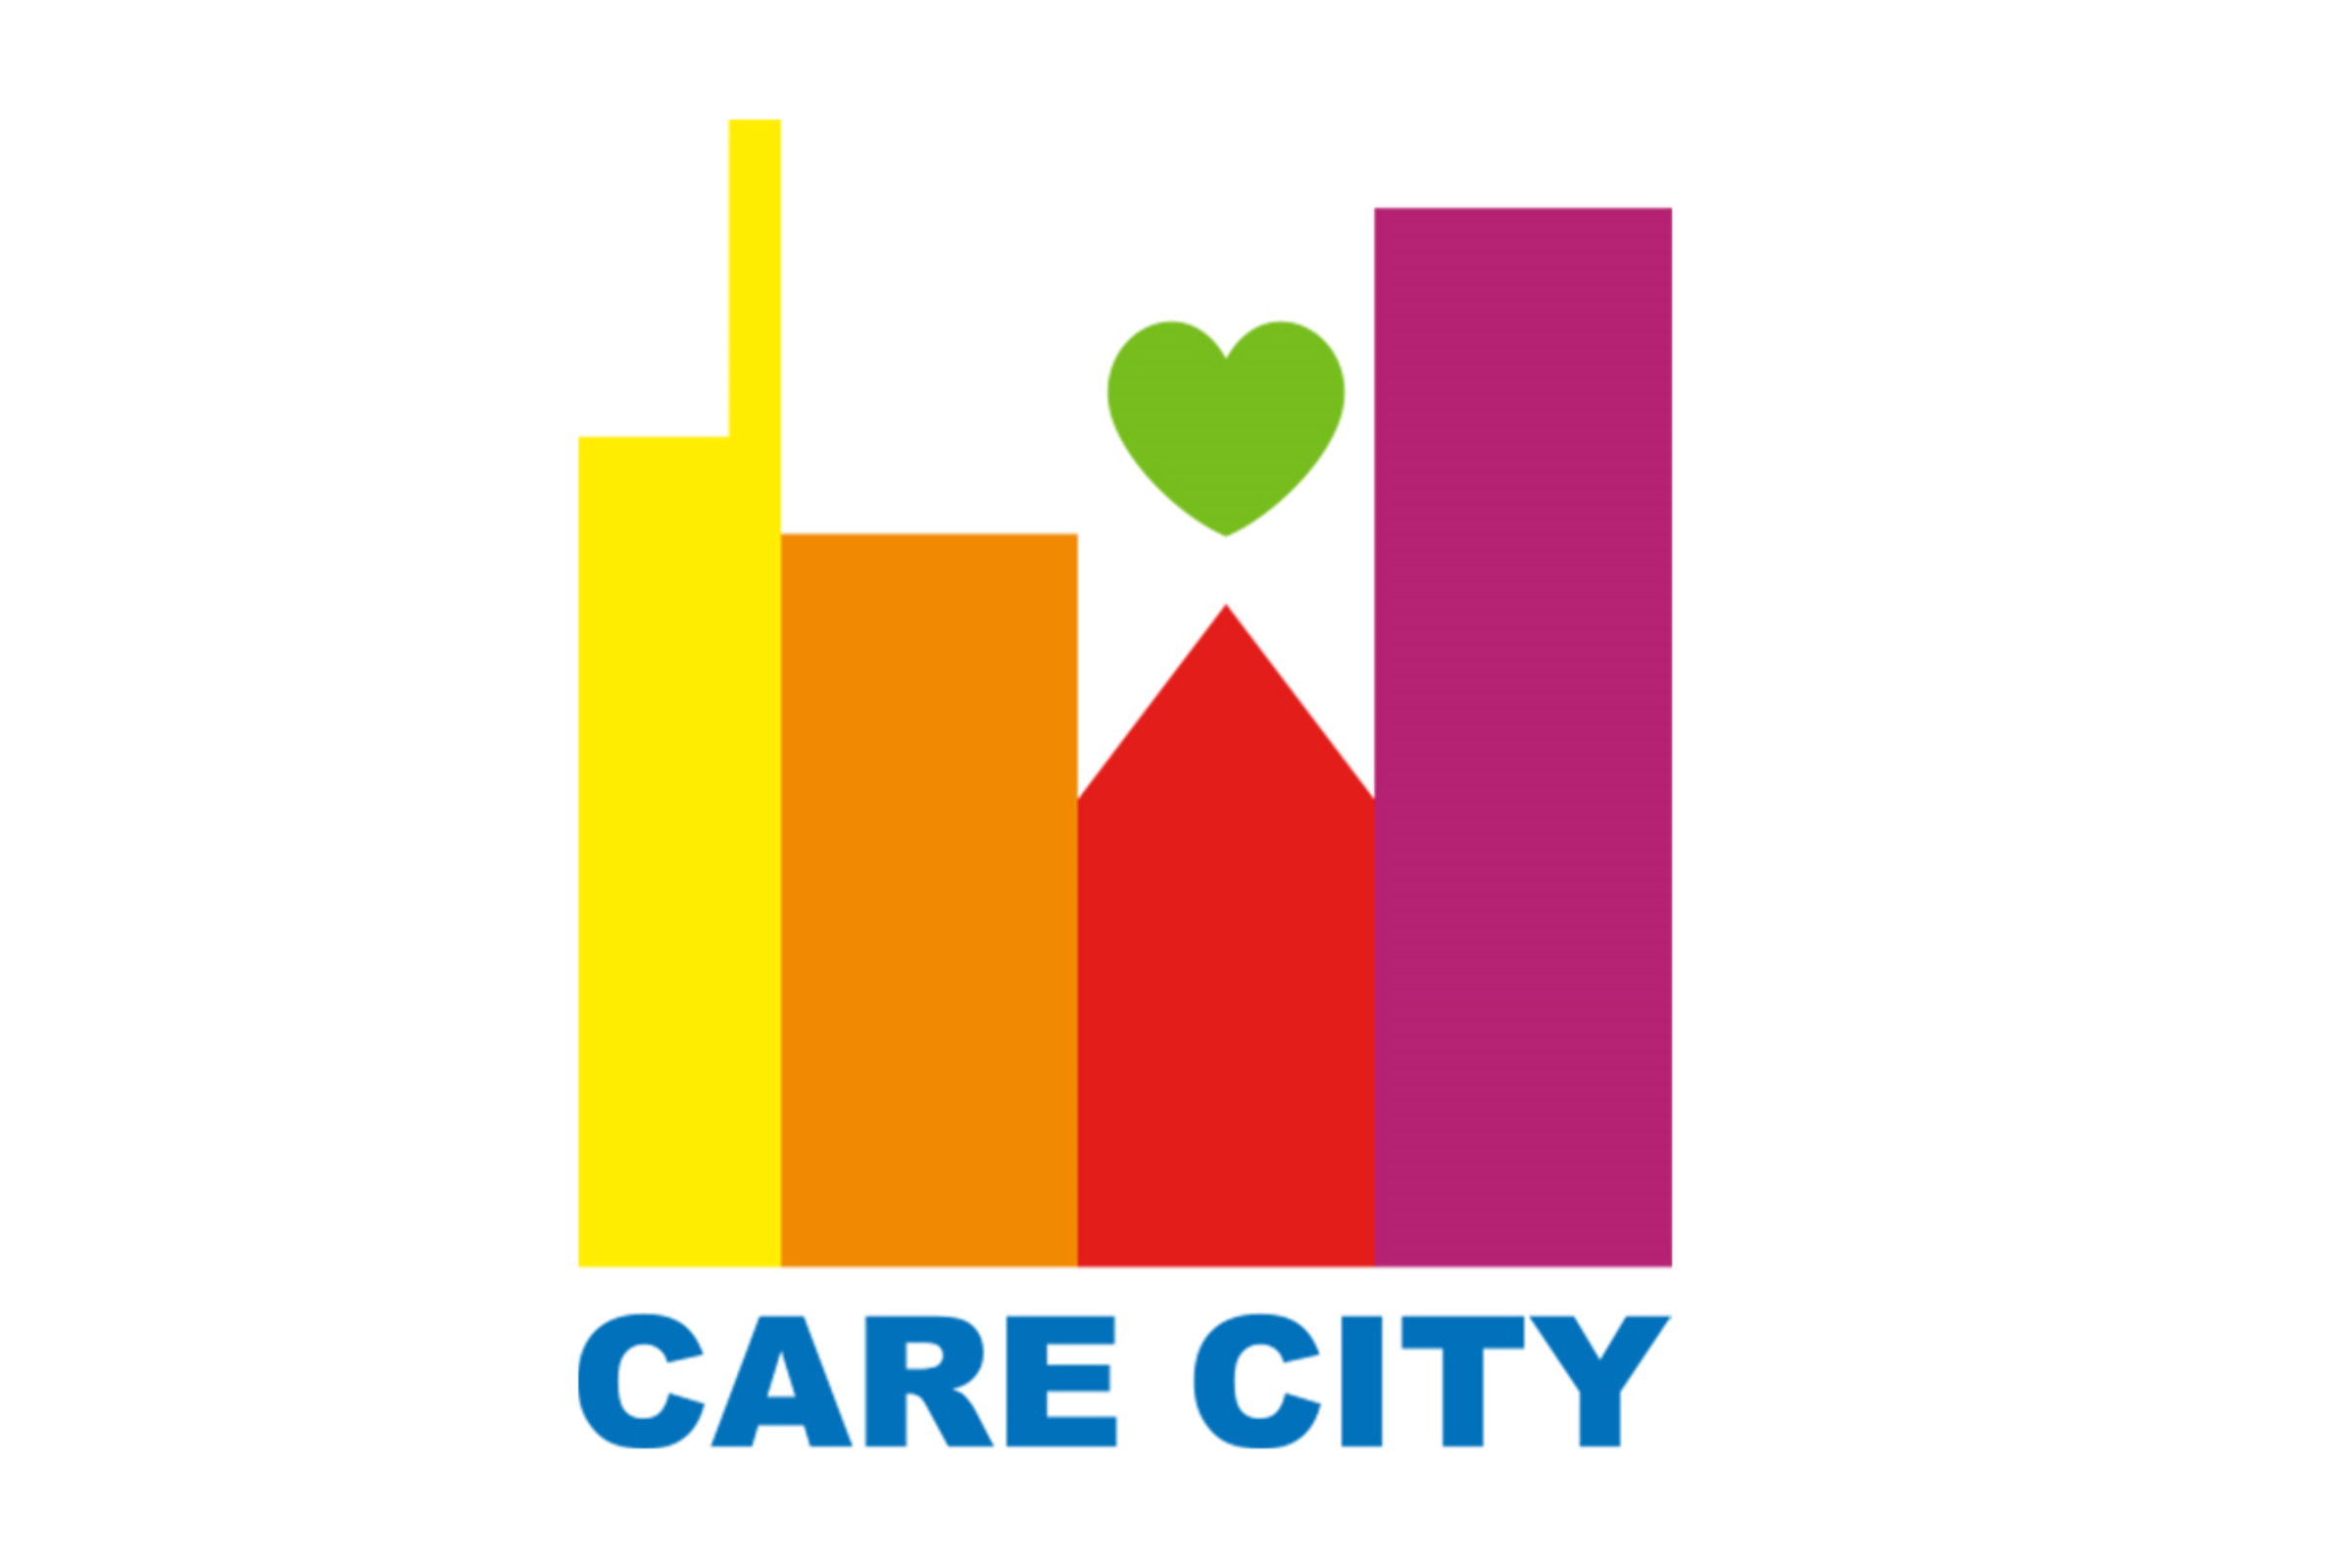 Care City - Monitoring Mental Health Settings